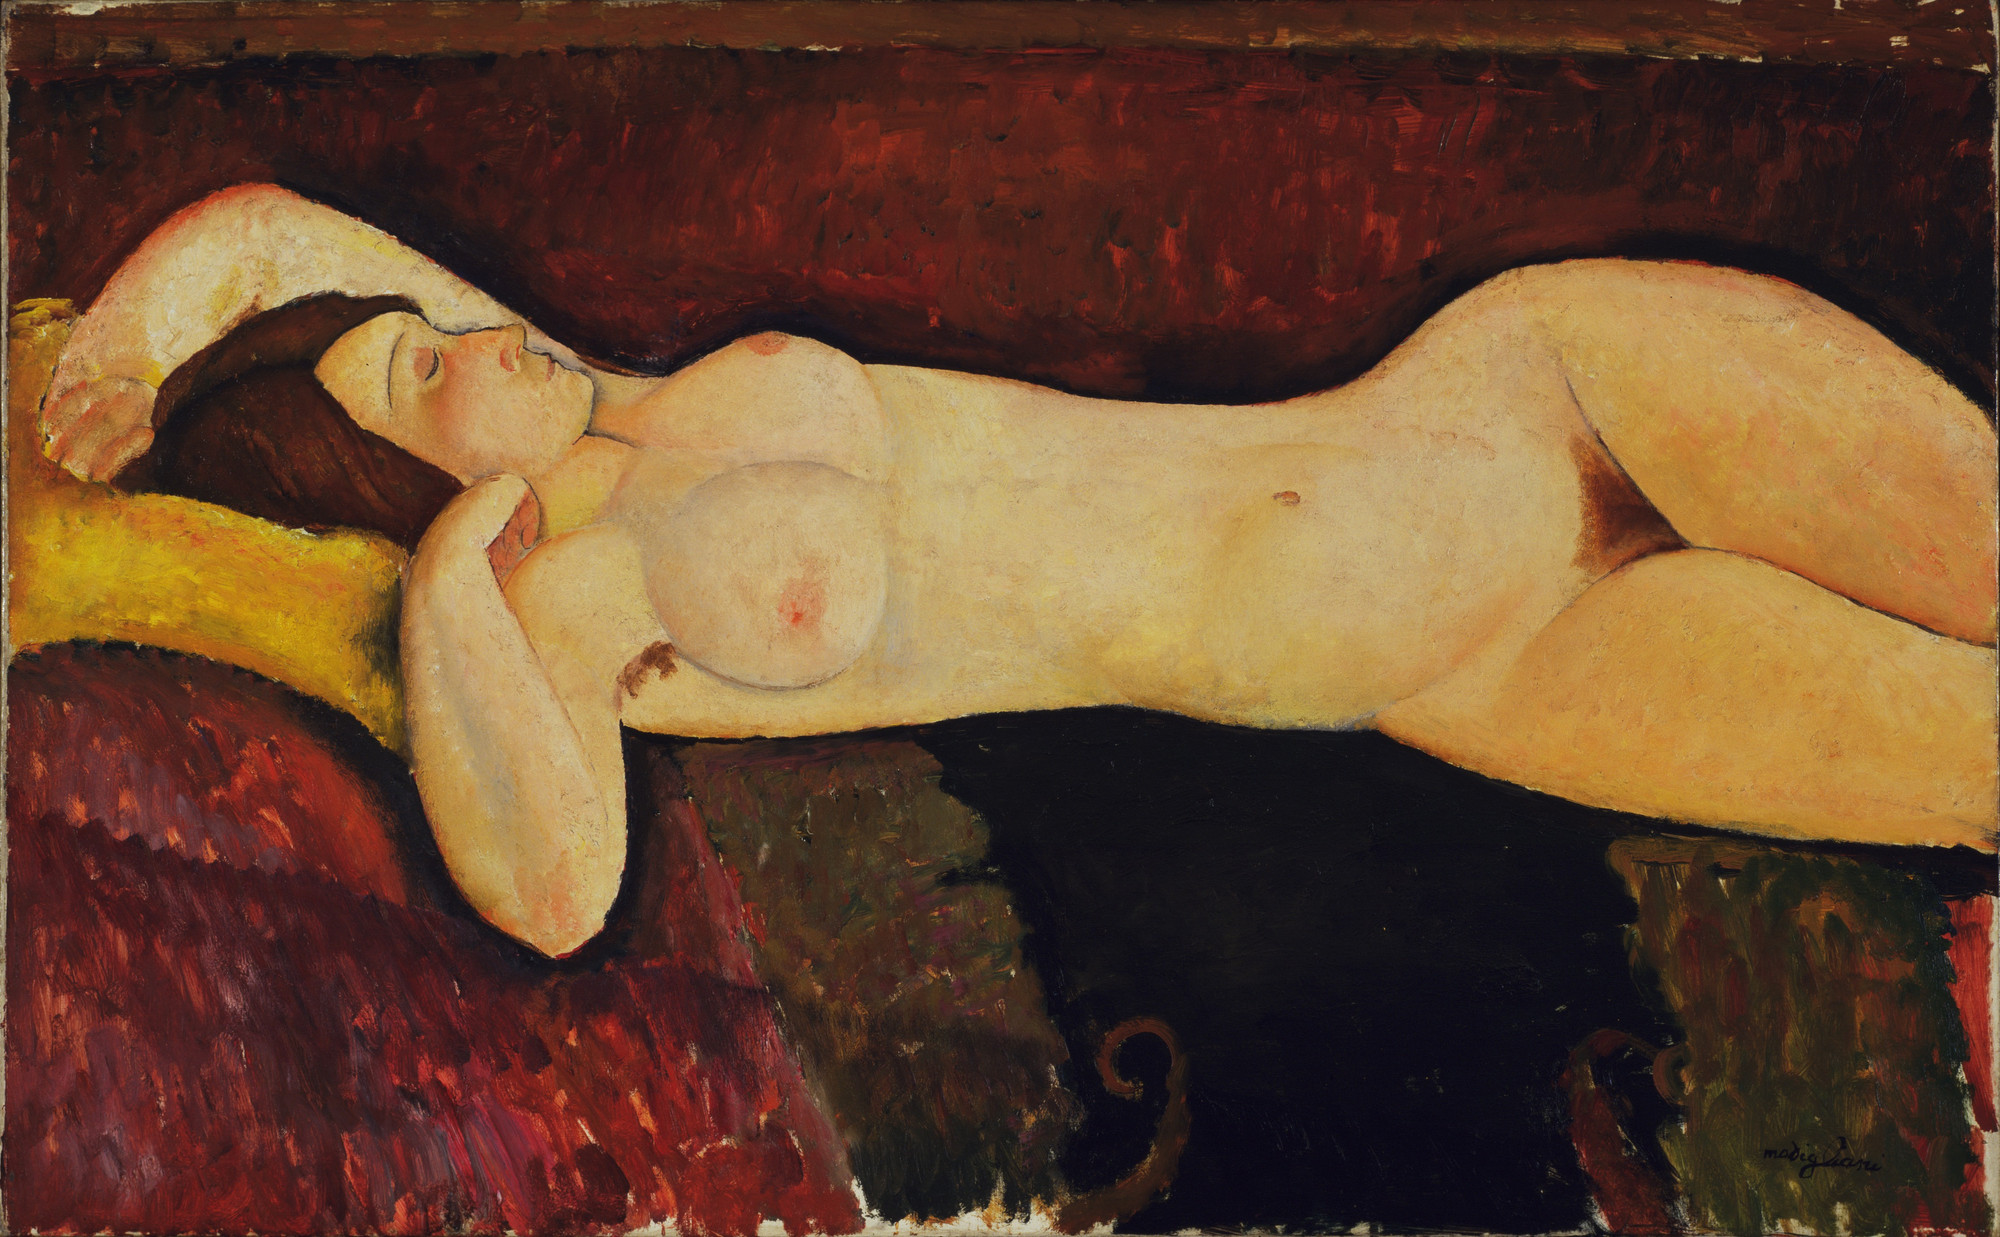 Amedeo Modigliani. Reclining Nude. c. 1919